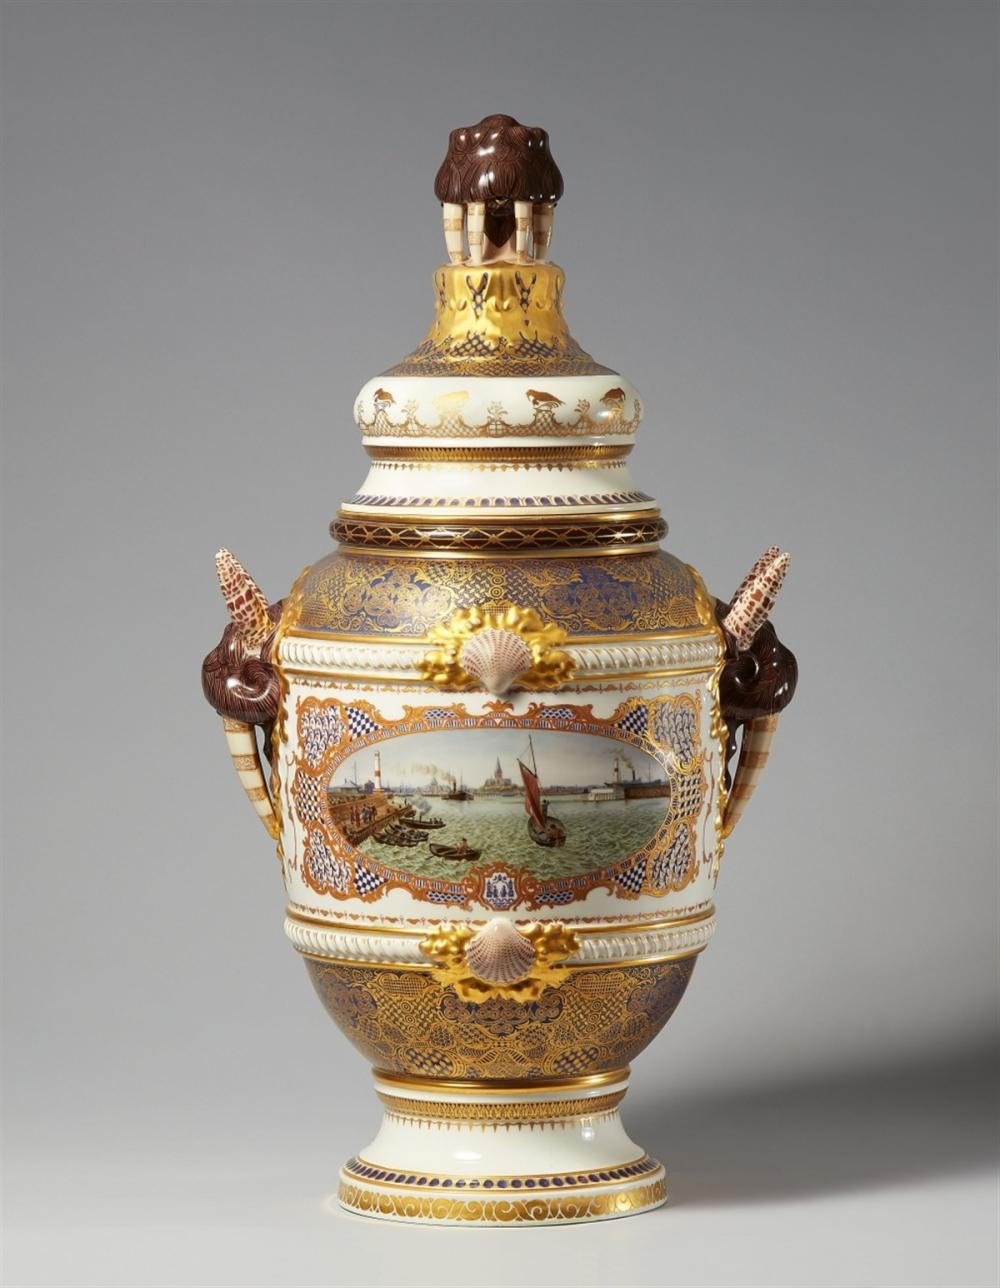 Large vase with lid, harbor view, Copenhagen, Bing & Grøndahl, 1902-1914, image © Lempertz